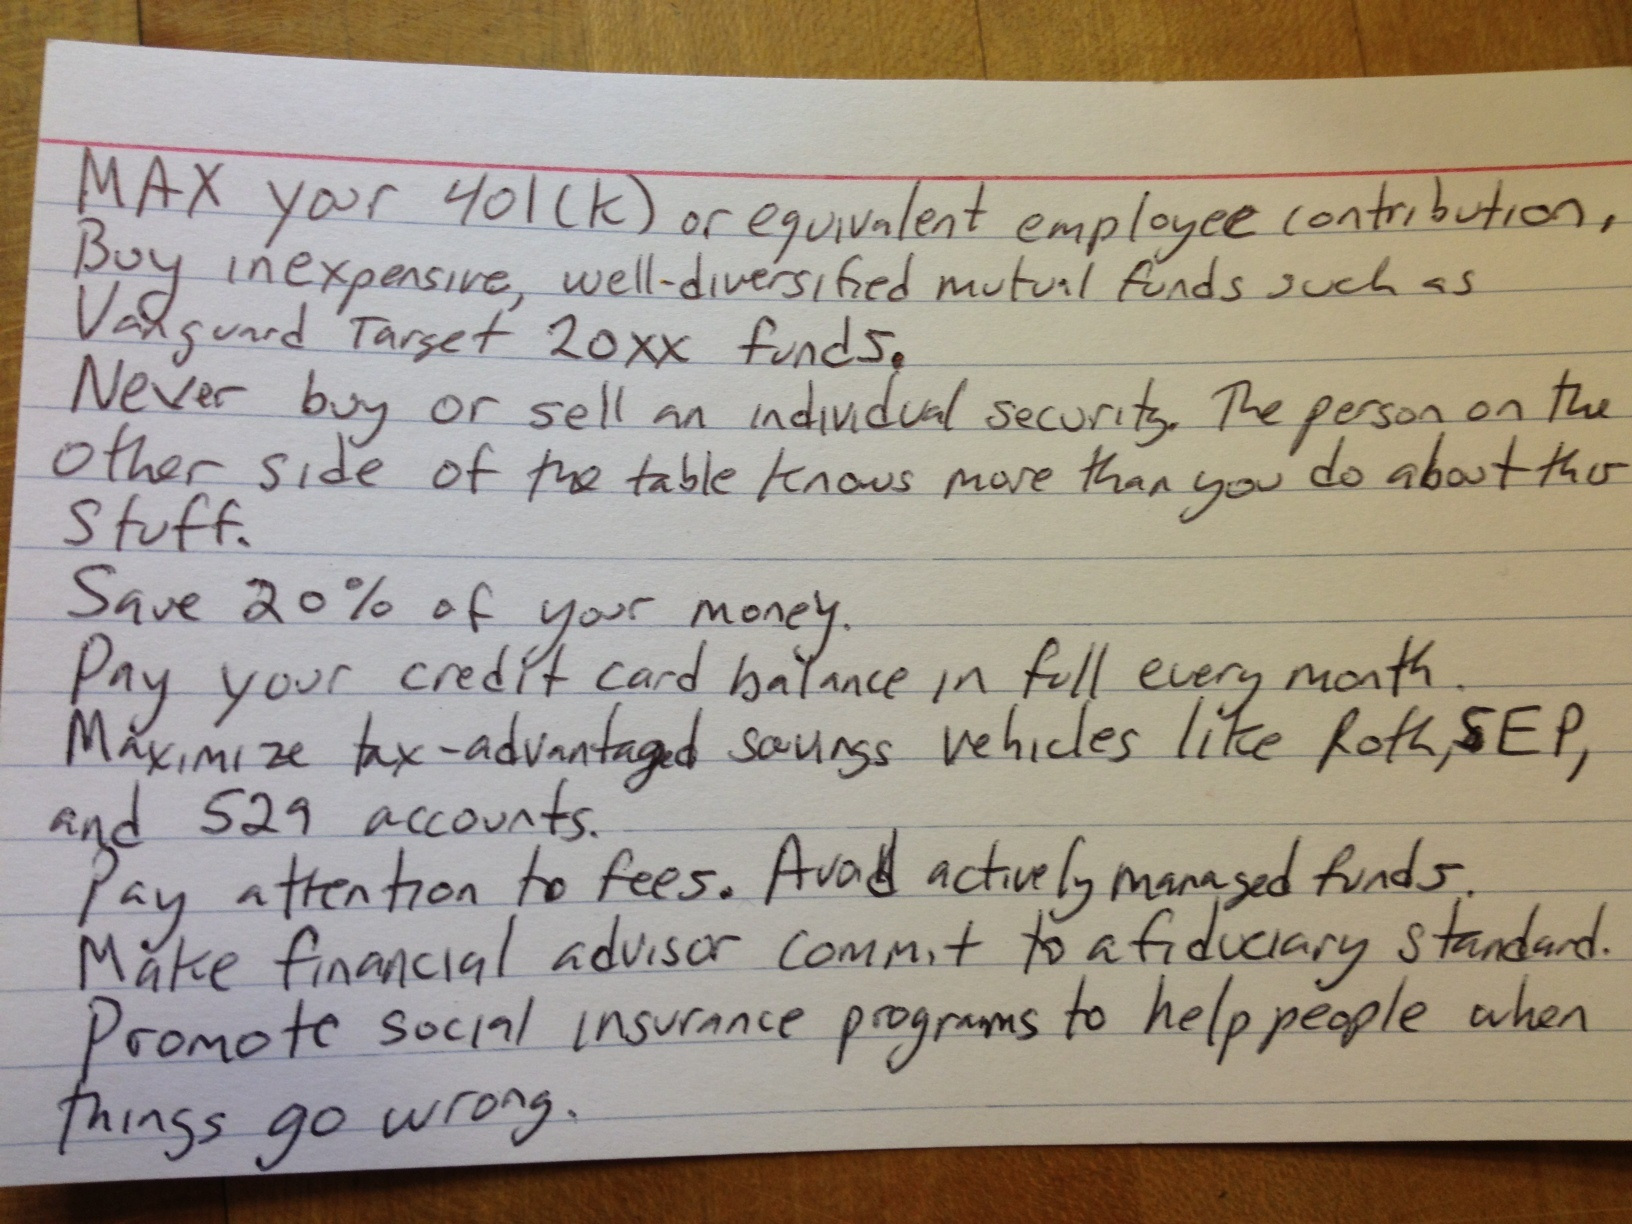 Retirement plan on an index card